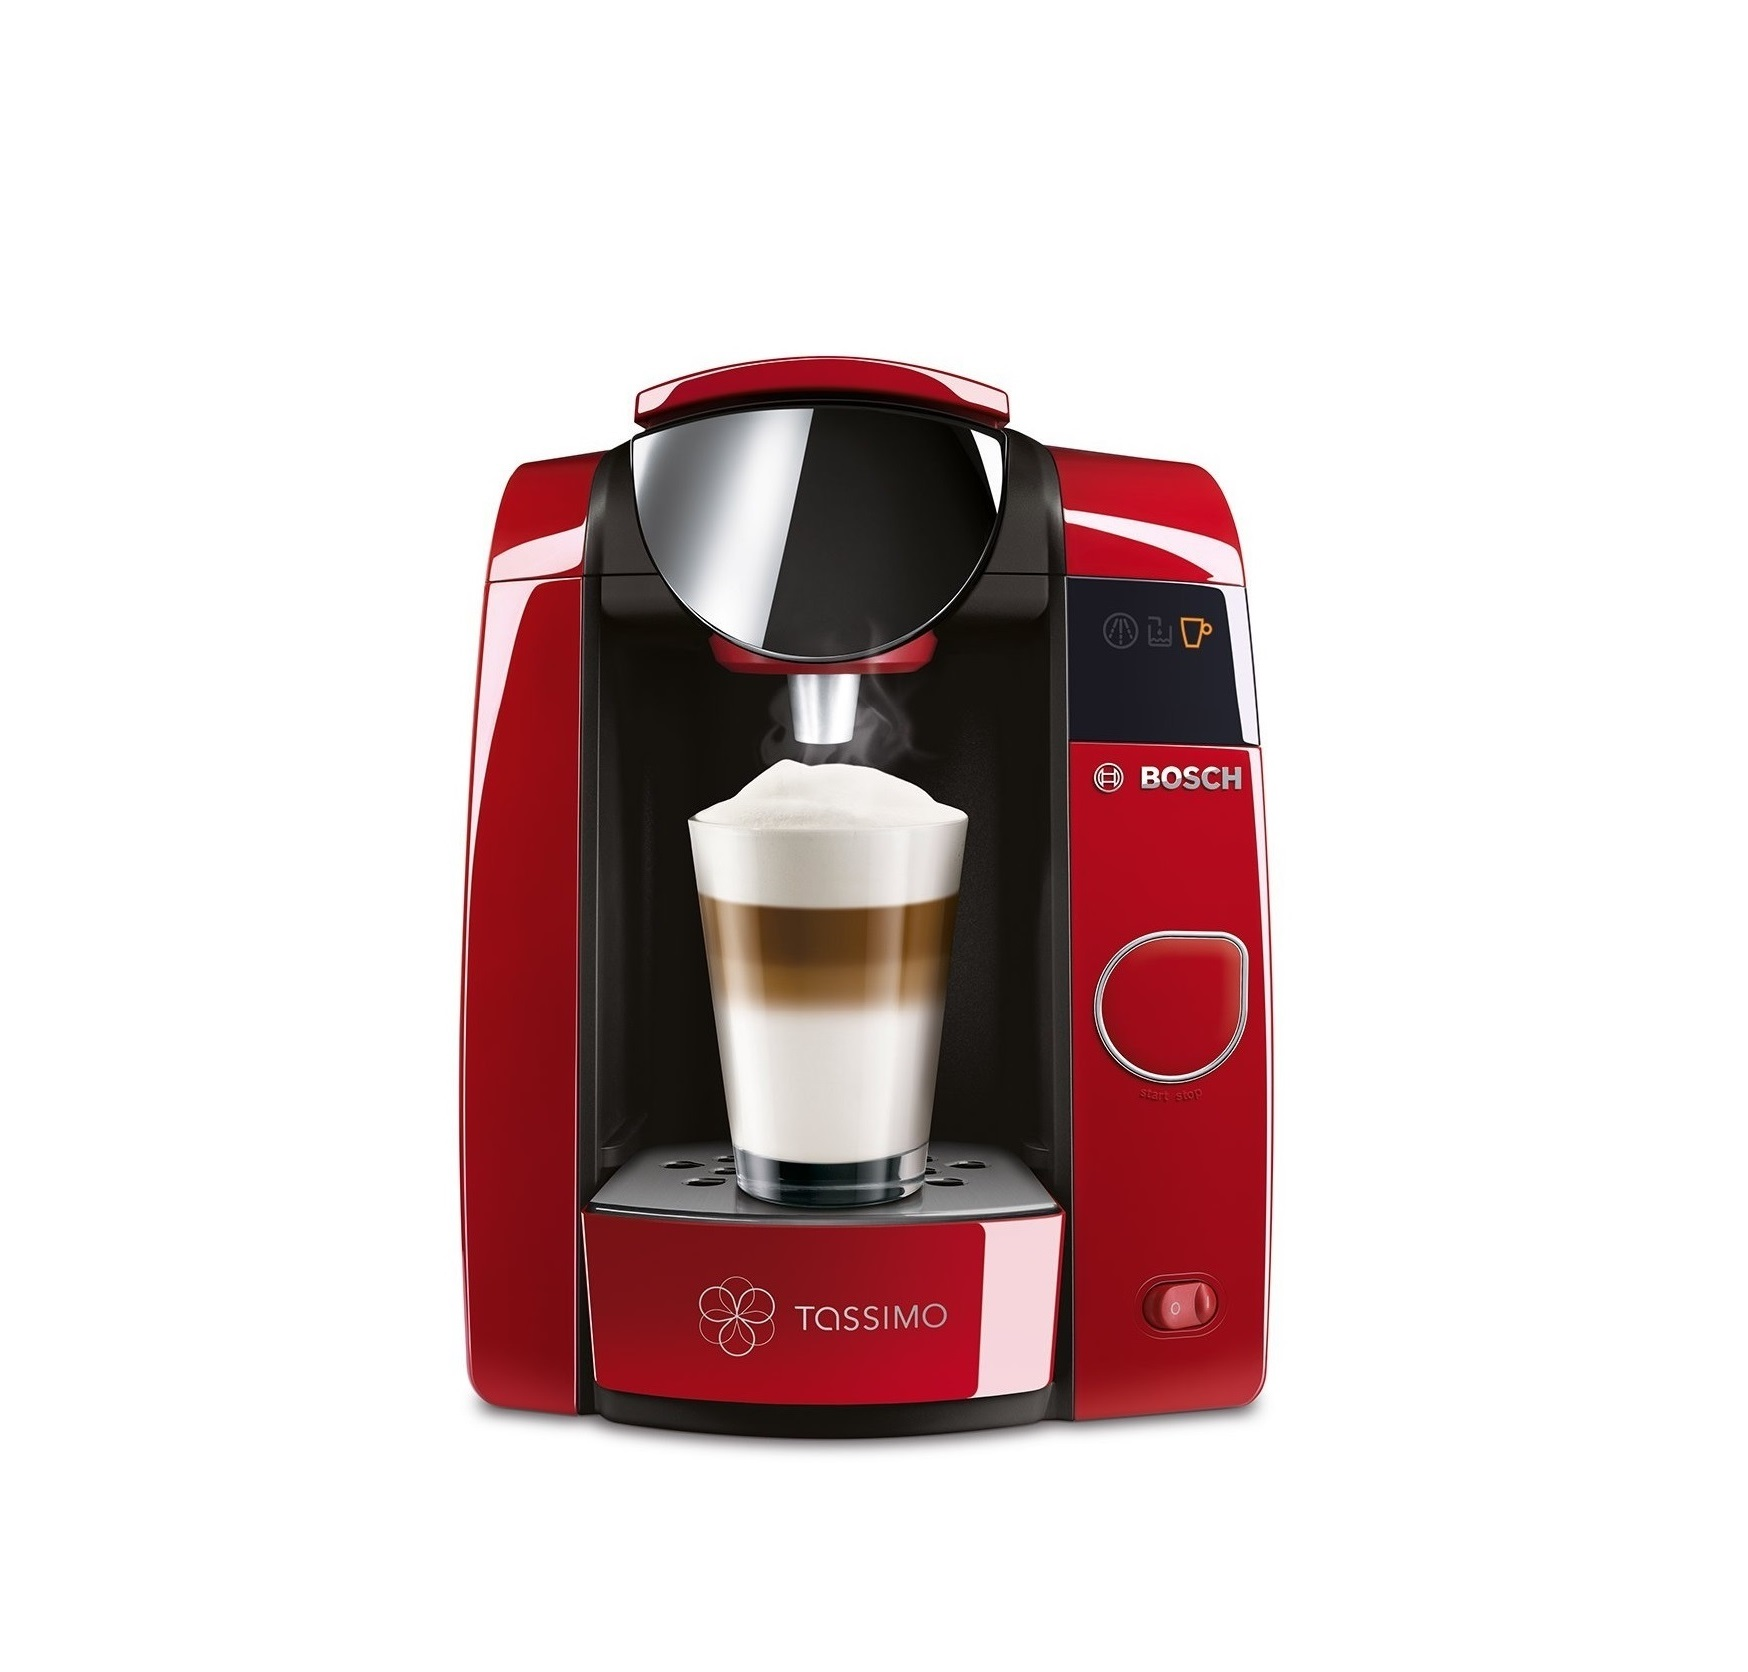 bosch tassimo joy 2 t45 multi drinks pod machine red tas4503gb around the clock offers. Black Bedroom Furniture Sets. Home Design Ideas